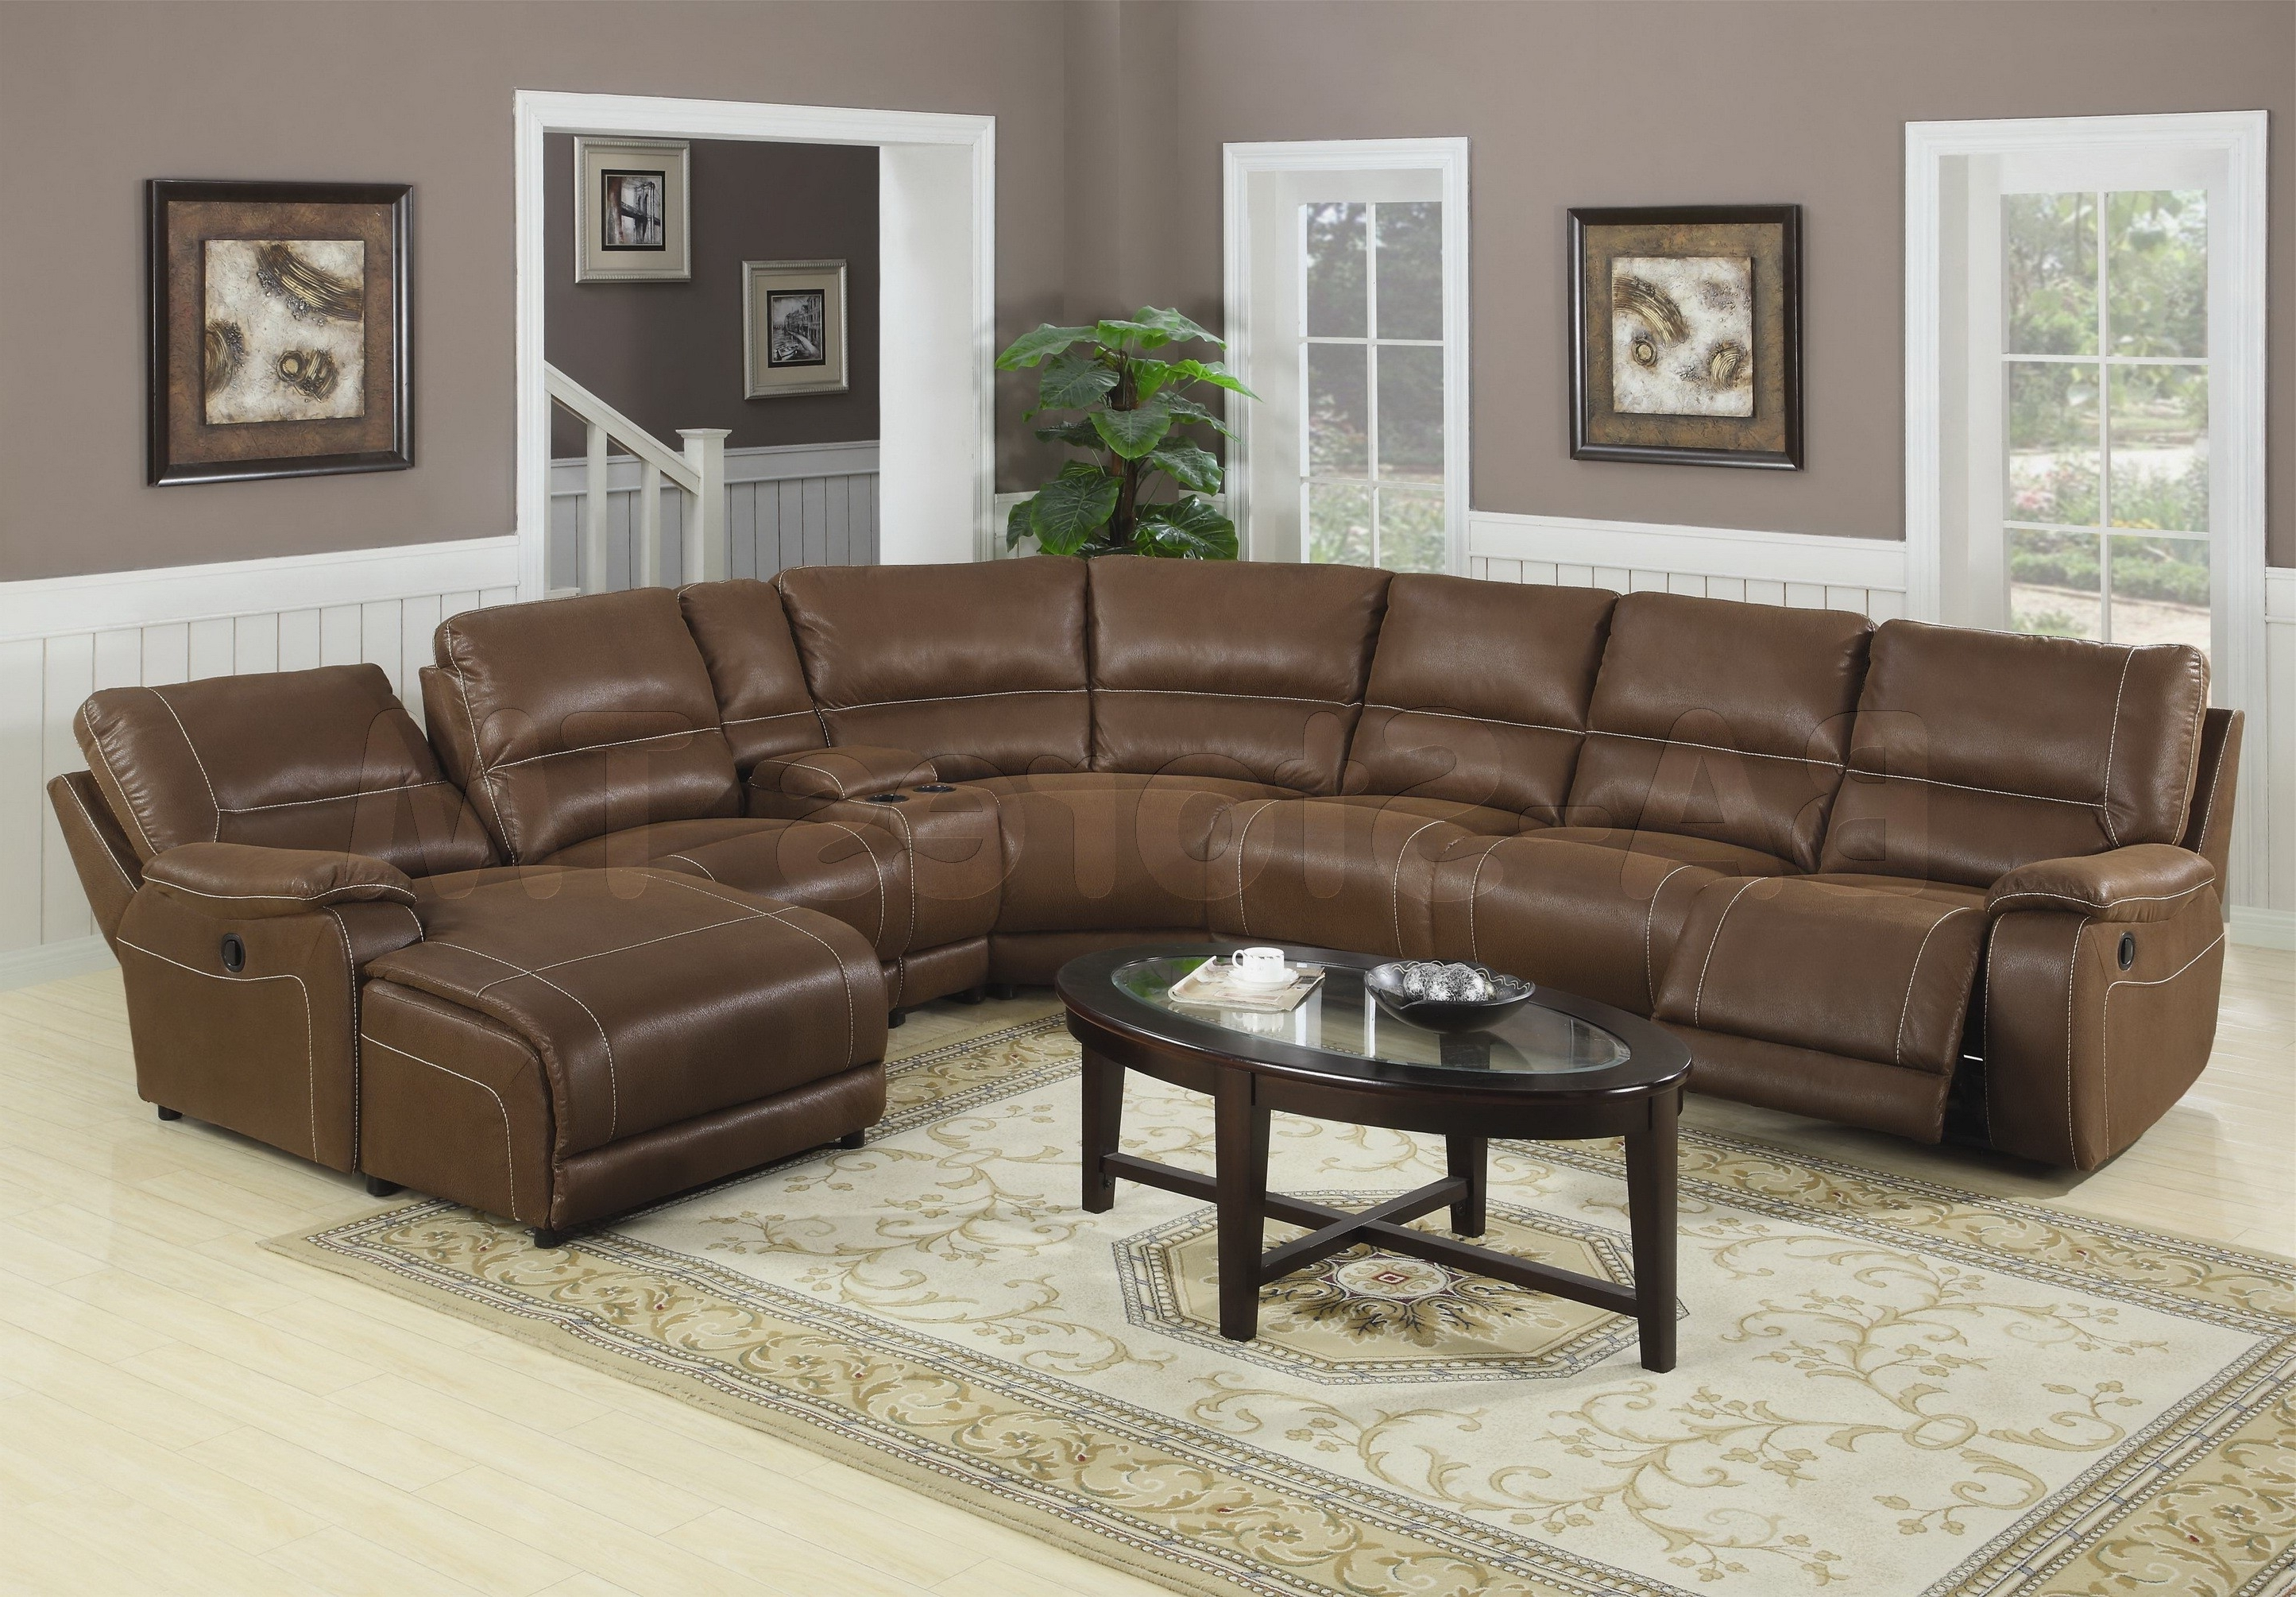 6 Piece Leather Sectional Sofa – Radiovannes With Regard To Current 6 Piece Leather Sectional Sofas (Gallery 12 of 20)